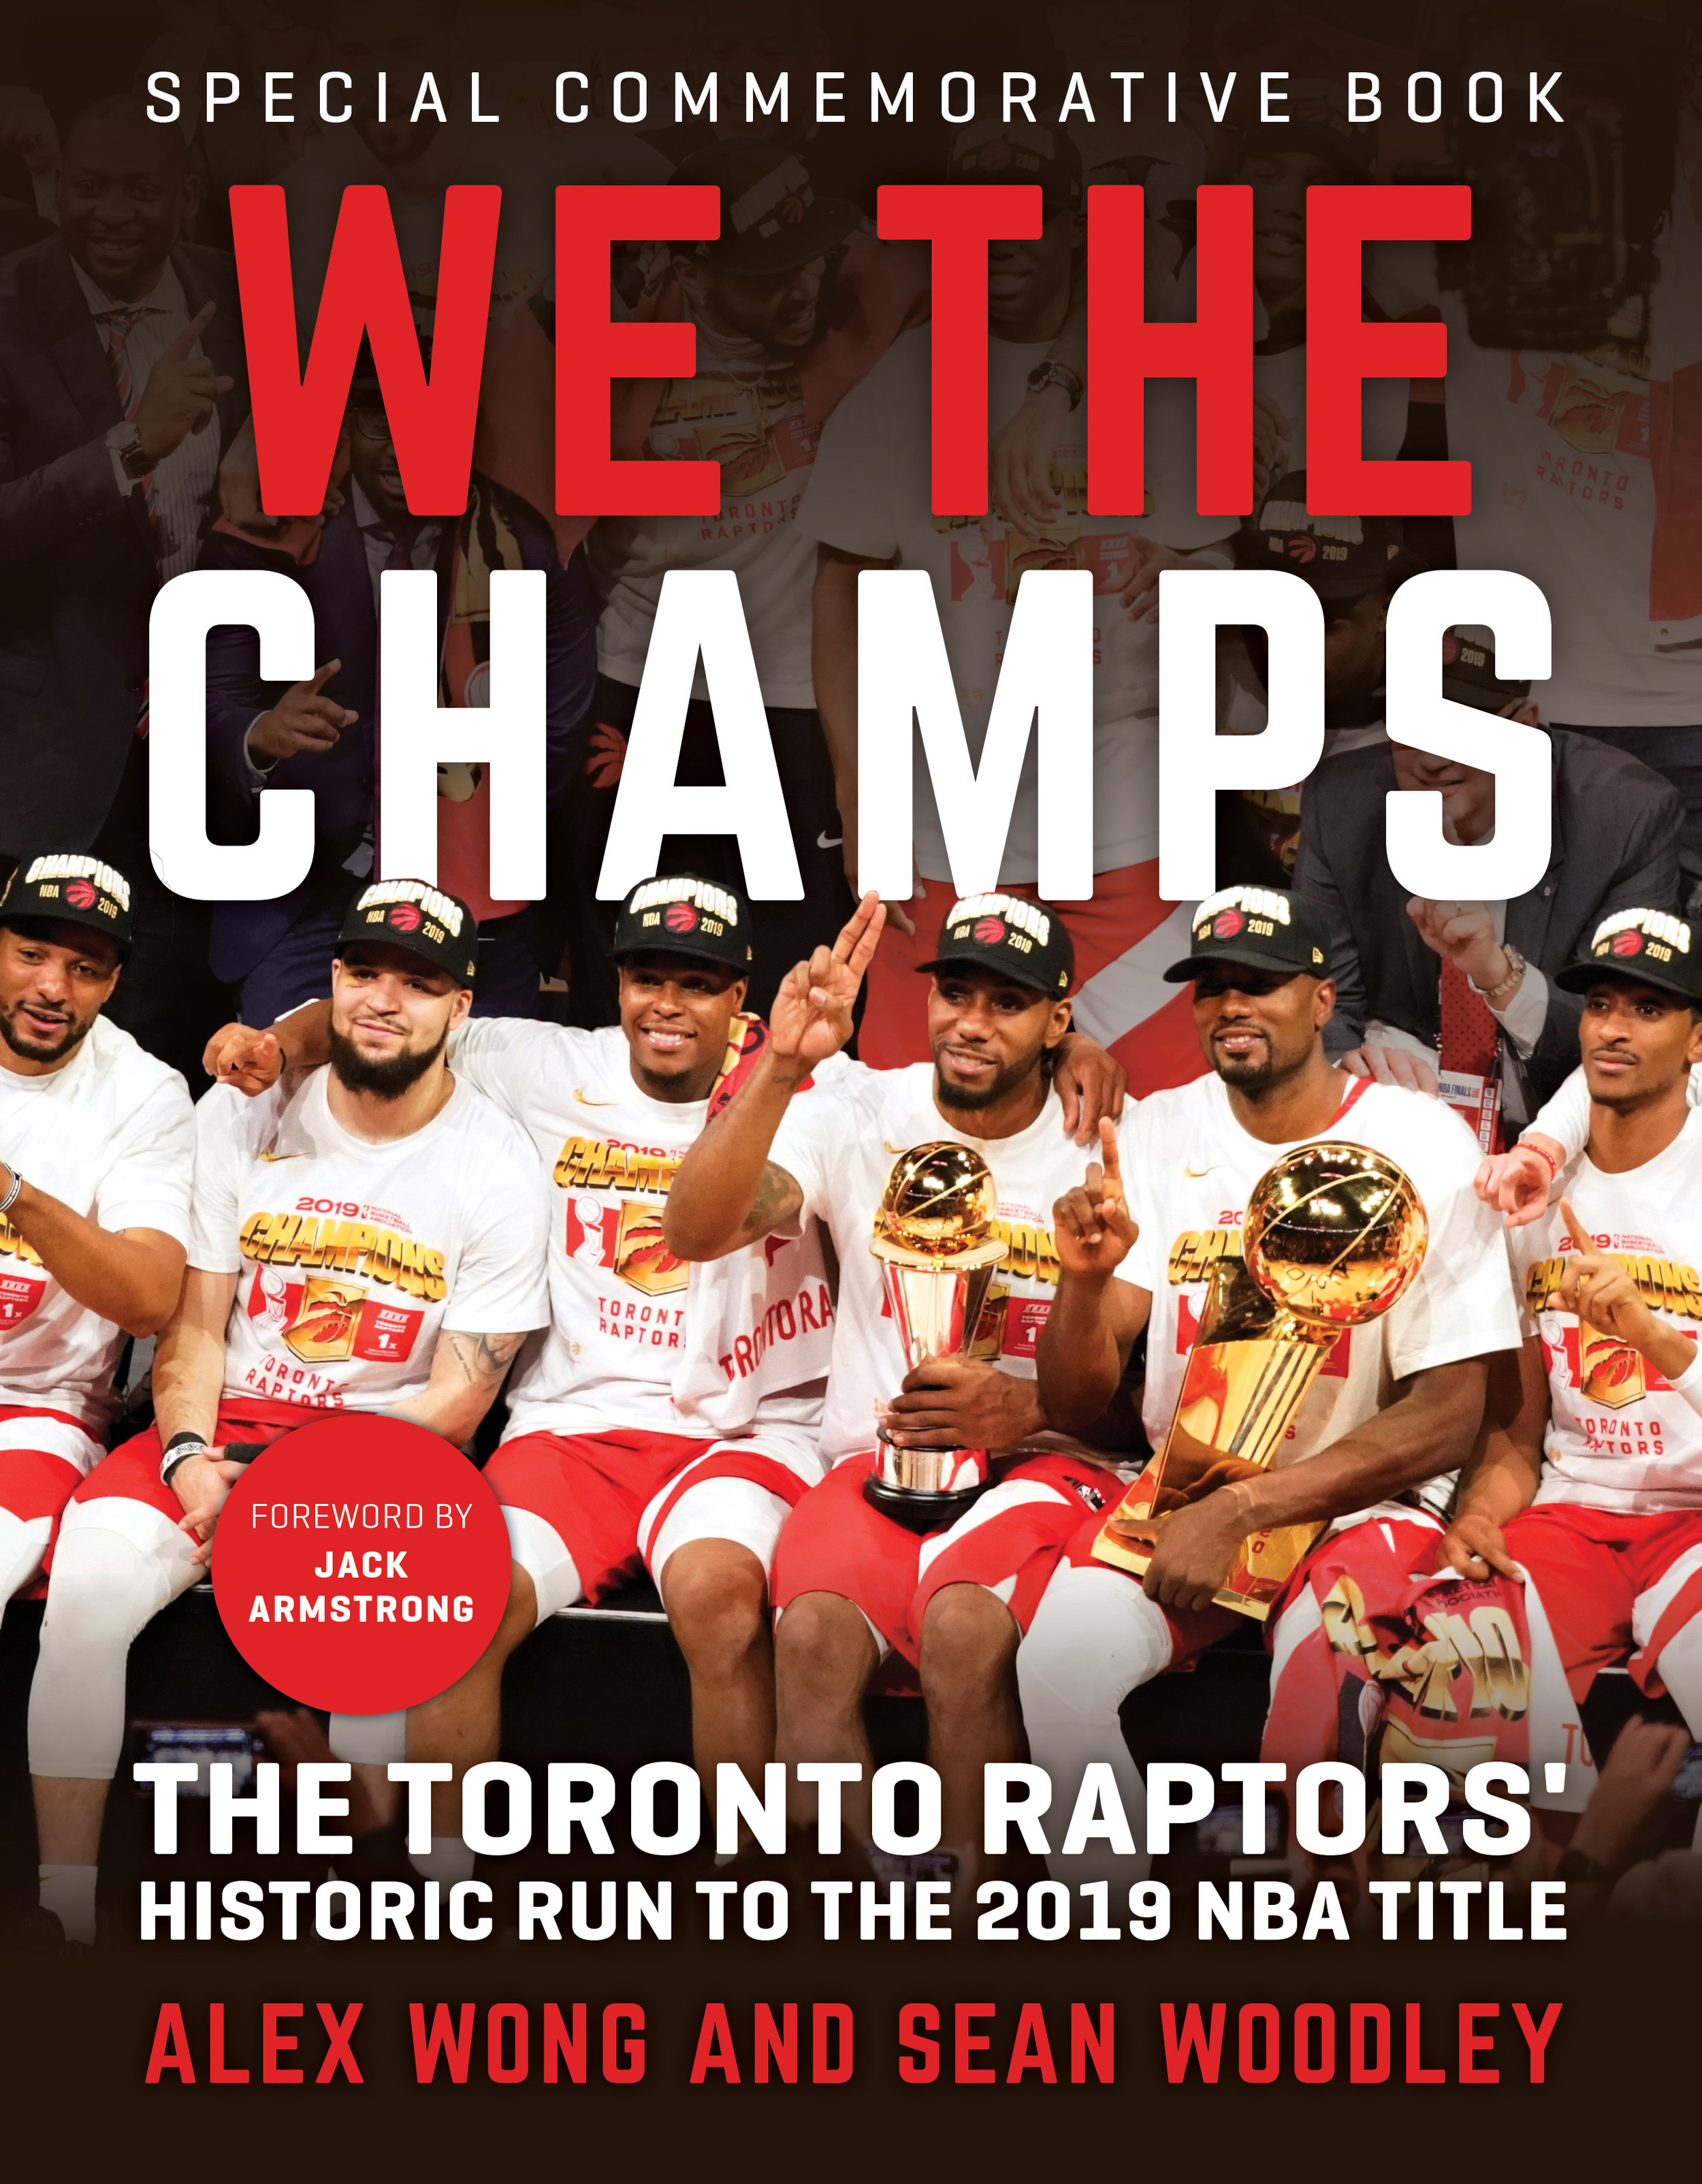 WE THE CHAMPS: THE TORONTO RAPTORS' HISTORIC RUN TO THE 2019...By Alex Wong and Sean Woodley  Paperback | June 25, 2019 | 9781629376684